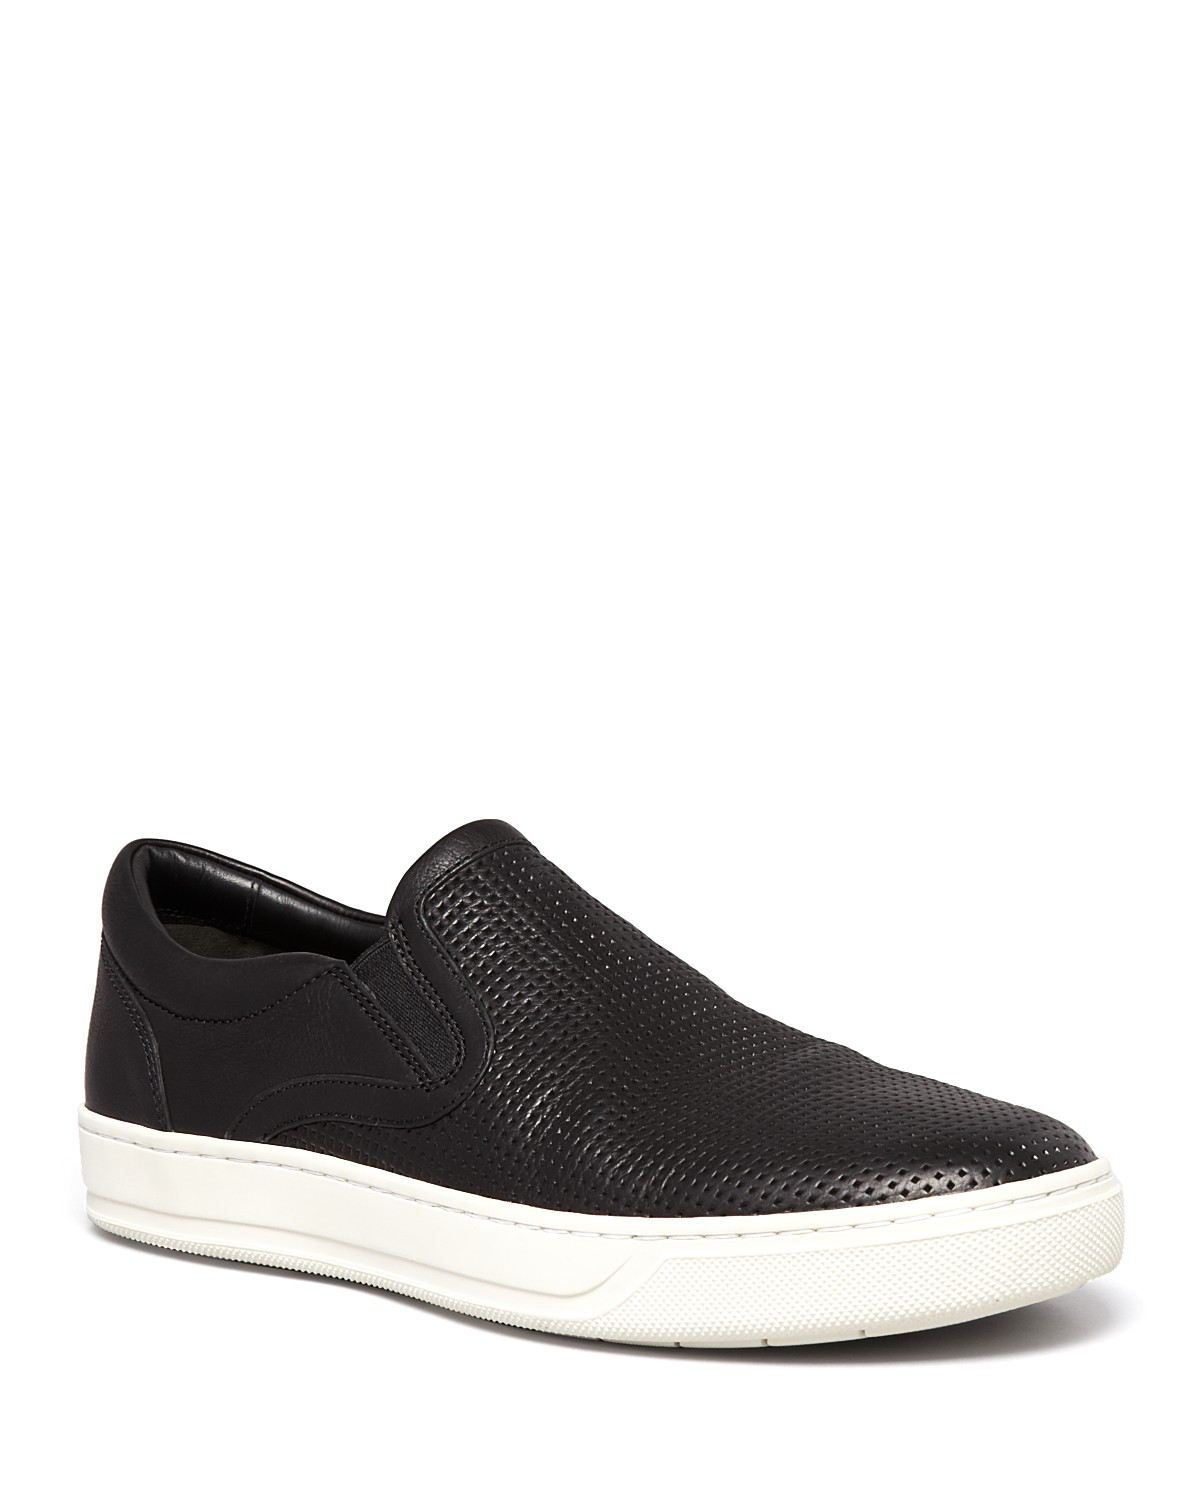 Vince Ace Perforated Slip-On Sneakers cCgmEF